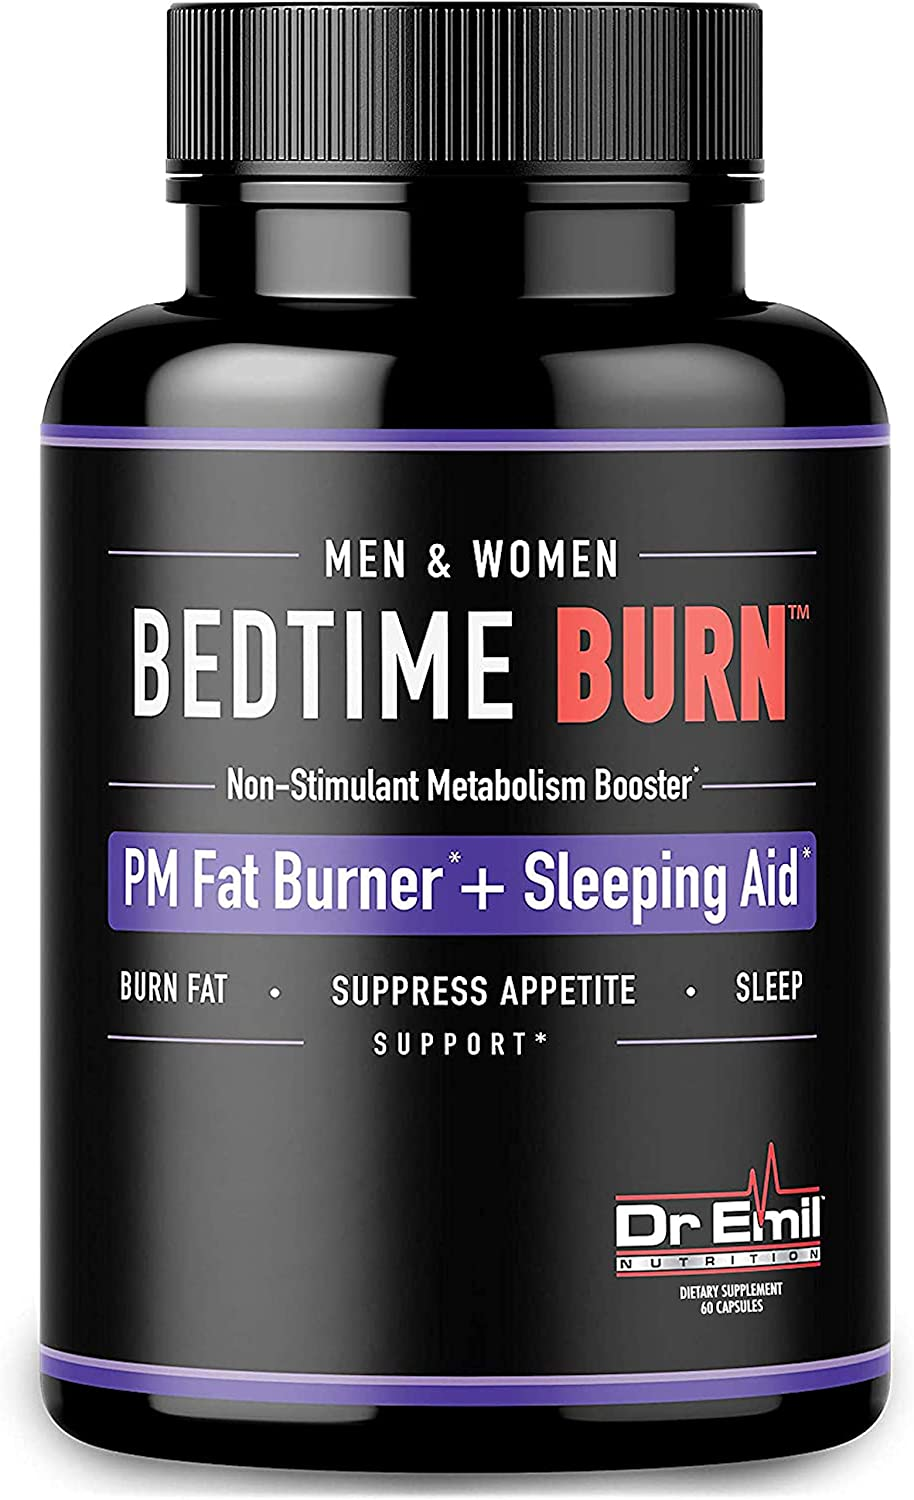 Dr. Emil - PM Fat Burner, Sleep Aid and Night Time Appetite Suppressant - Stimulant-Free Weight Loss Pills and Metabolism Booster for Men and Women (60 Diet Pills): Health & Personal Care